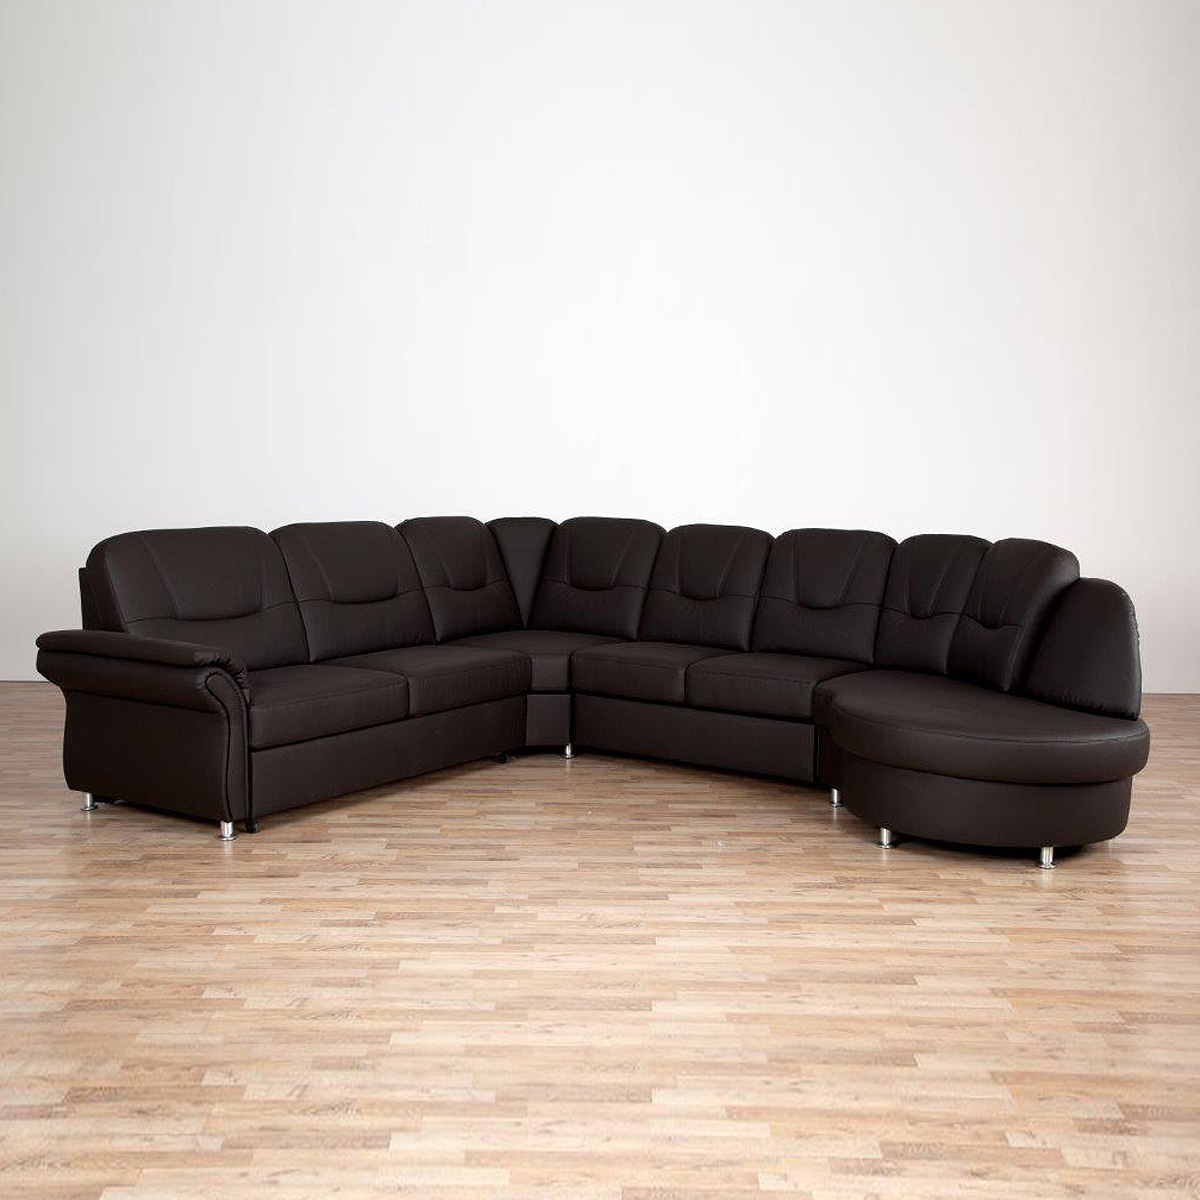 wohnlandschaft olaf sofa ecksofa in braun mit bettfunktion. Black Bedroom Furniture Sets. Home Design Ideas